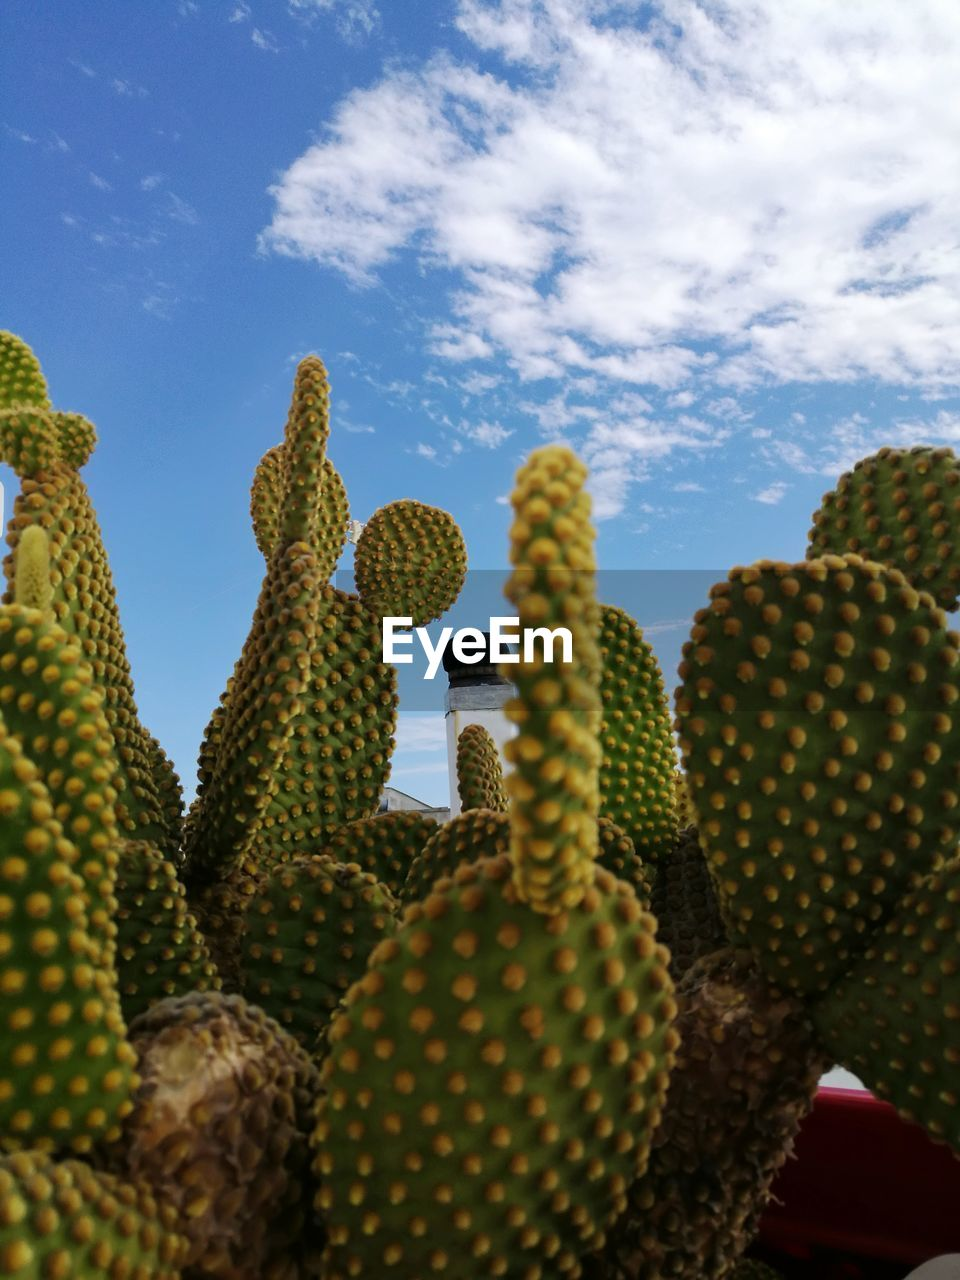 cactus, sky, succulent plant, plant, no people, nature, growth, cloud - sky, day, green color, beauty in nature, low angle view, thorn, prickly pear cactus, spiked, close-up, outdoors, saguaro cactus, yellow, freshness